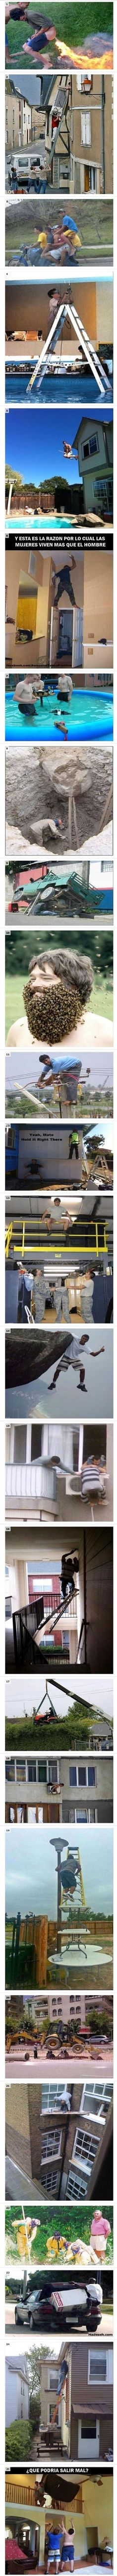 Why women live longer // funny pictures - funny photos - funny images - funny pics - funny quotes - #lol #humor #funnypictures